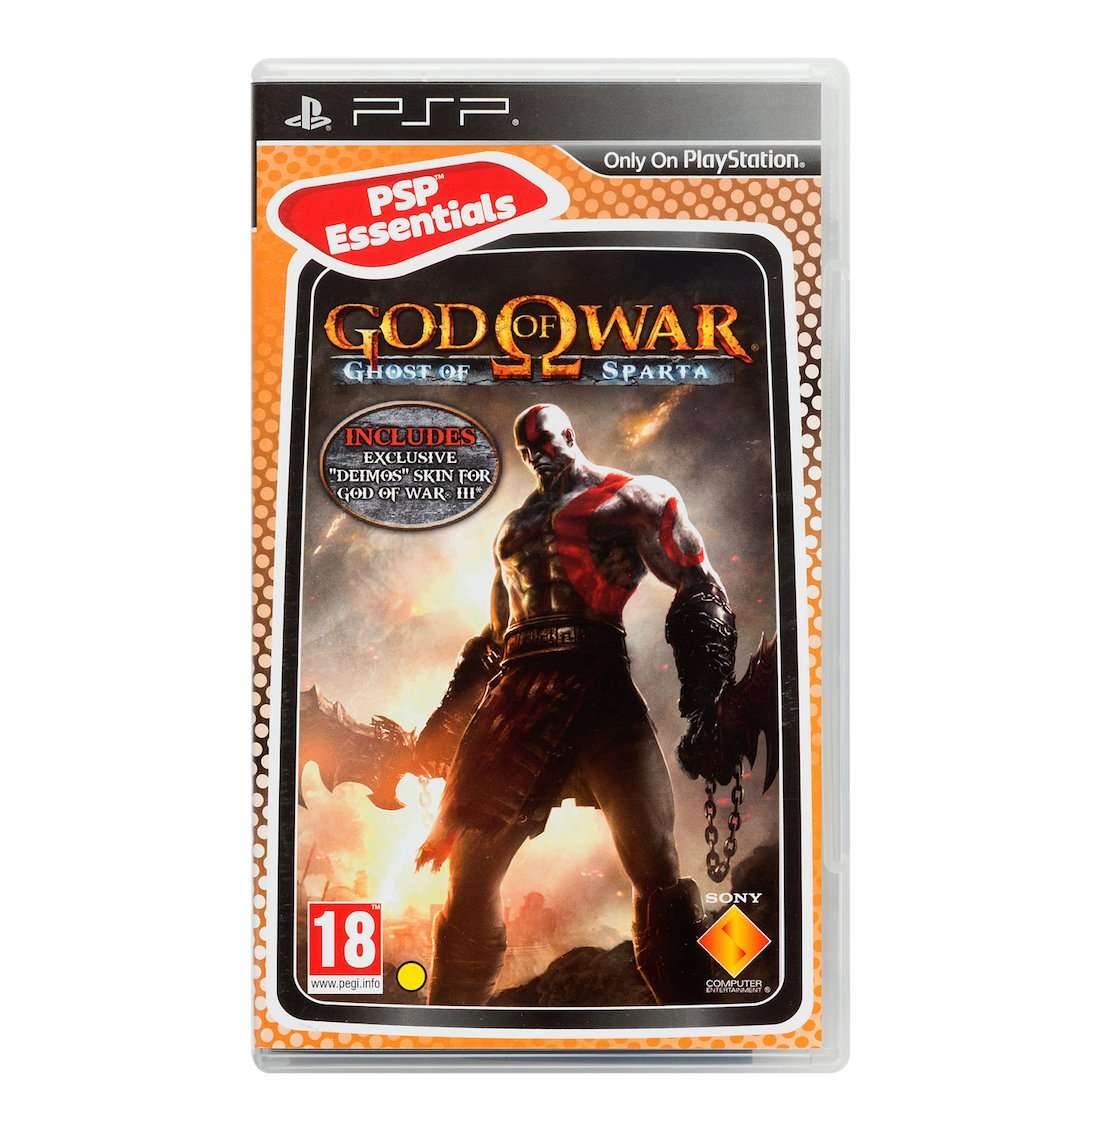 God of War: Ghost of Sparta - Essentials (PSP)